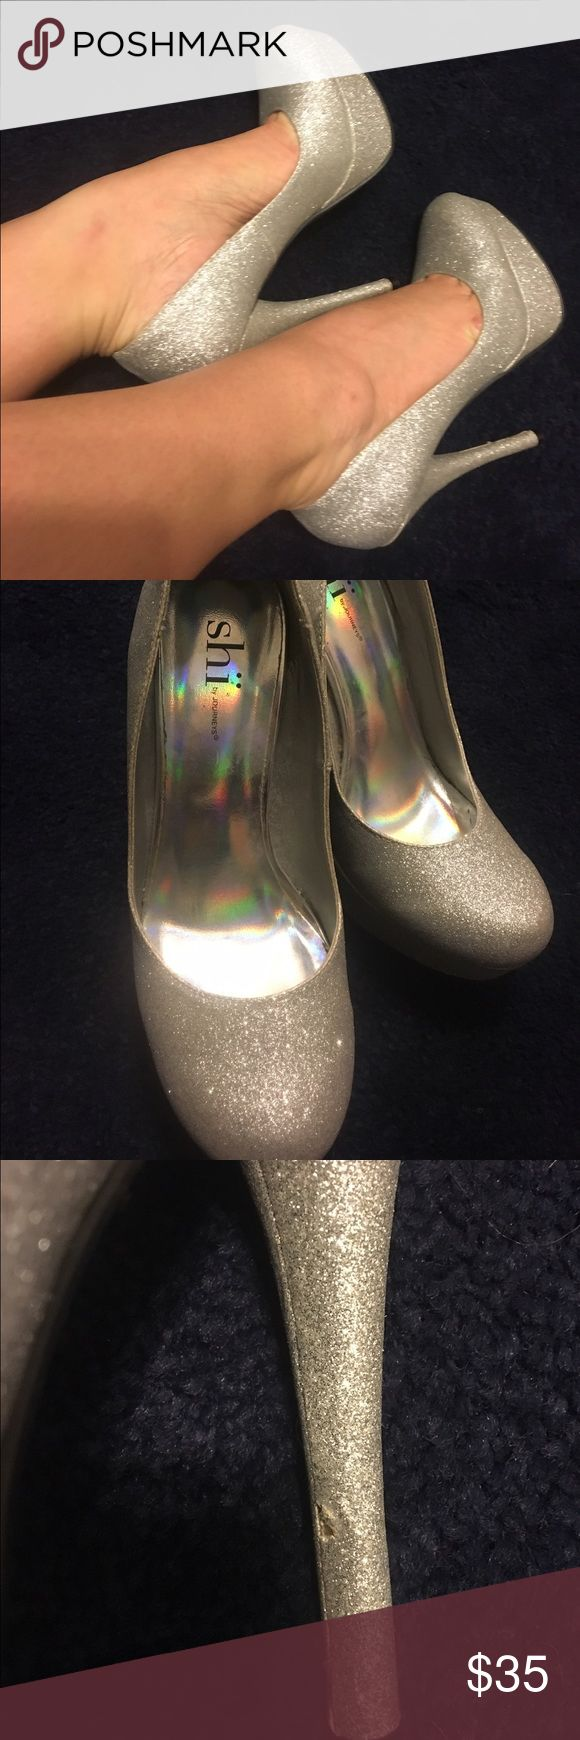 Sparkle Heels Beautiful sparkly silver heels! Worn once and they have a little defect on one heel but you can notice it! (Pictured above) Great for New Years! 🎉 Shoes Heels